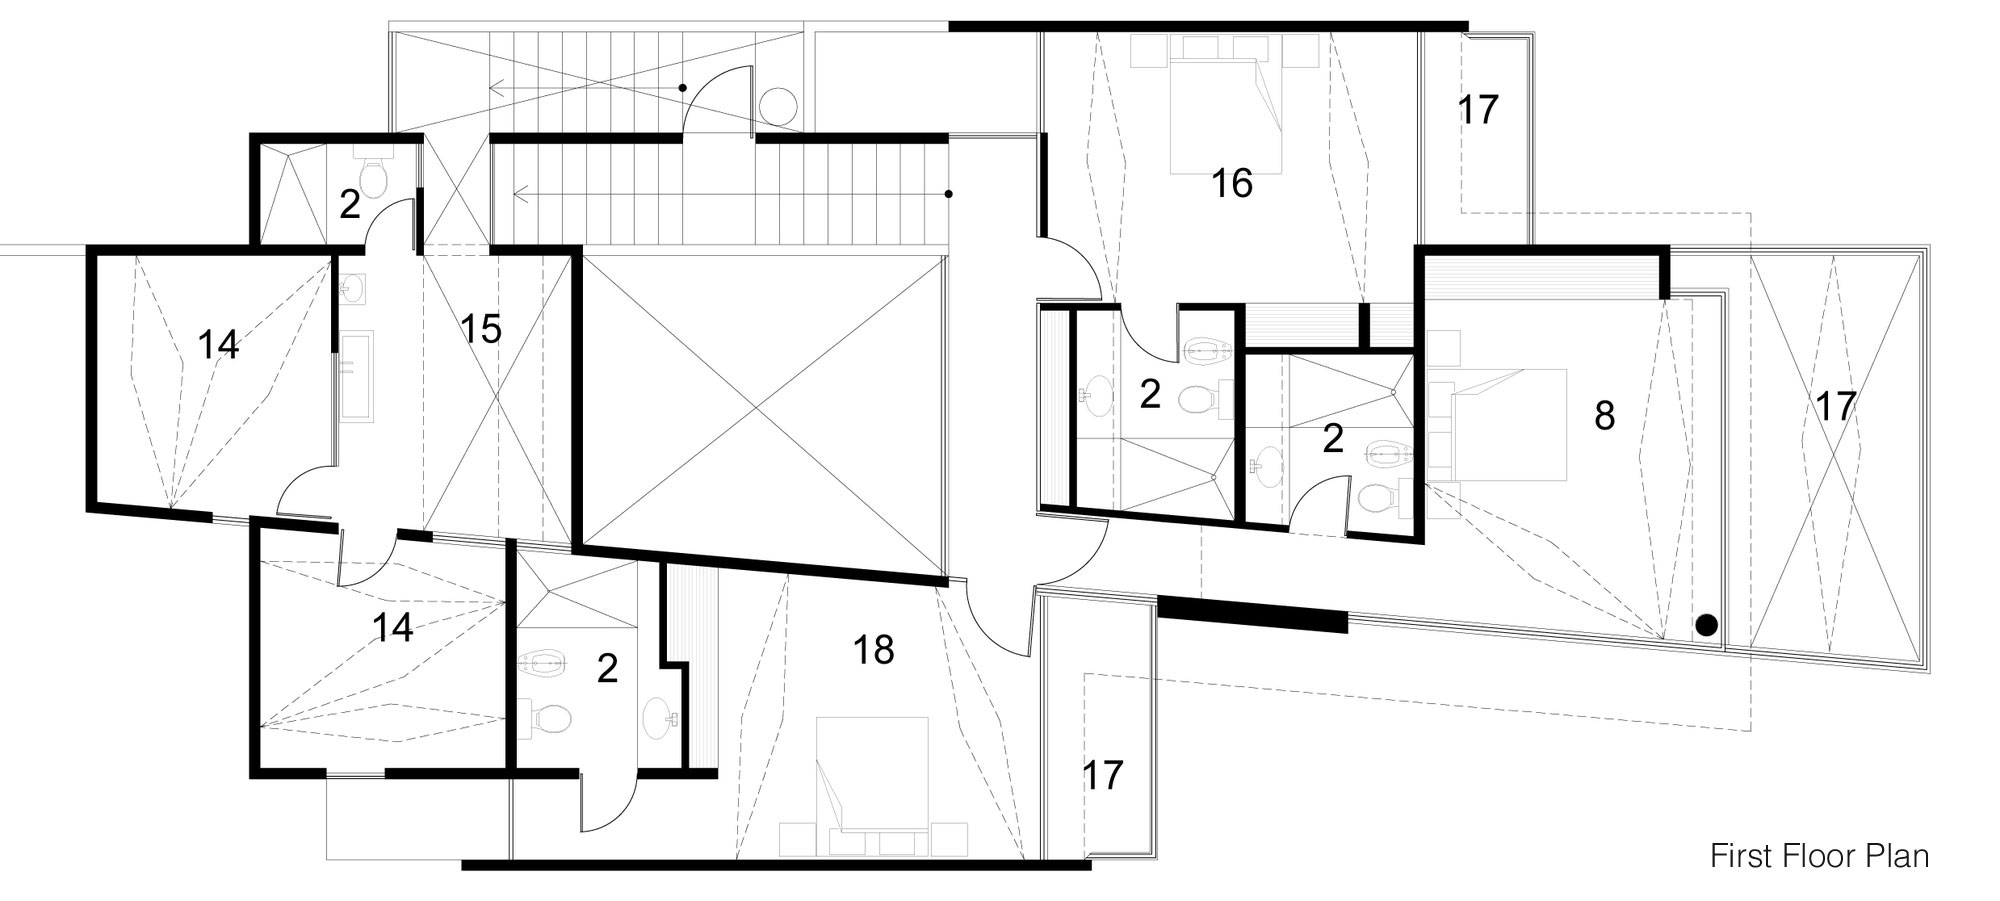 First Floor Plan, Tuunich Kanab in San Bruno, Mexico by Seijo Peon Arquitectos